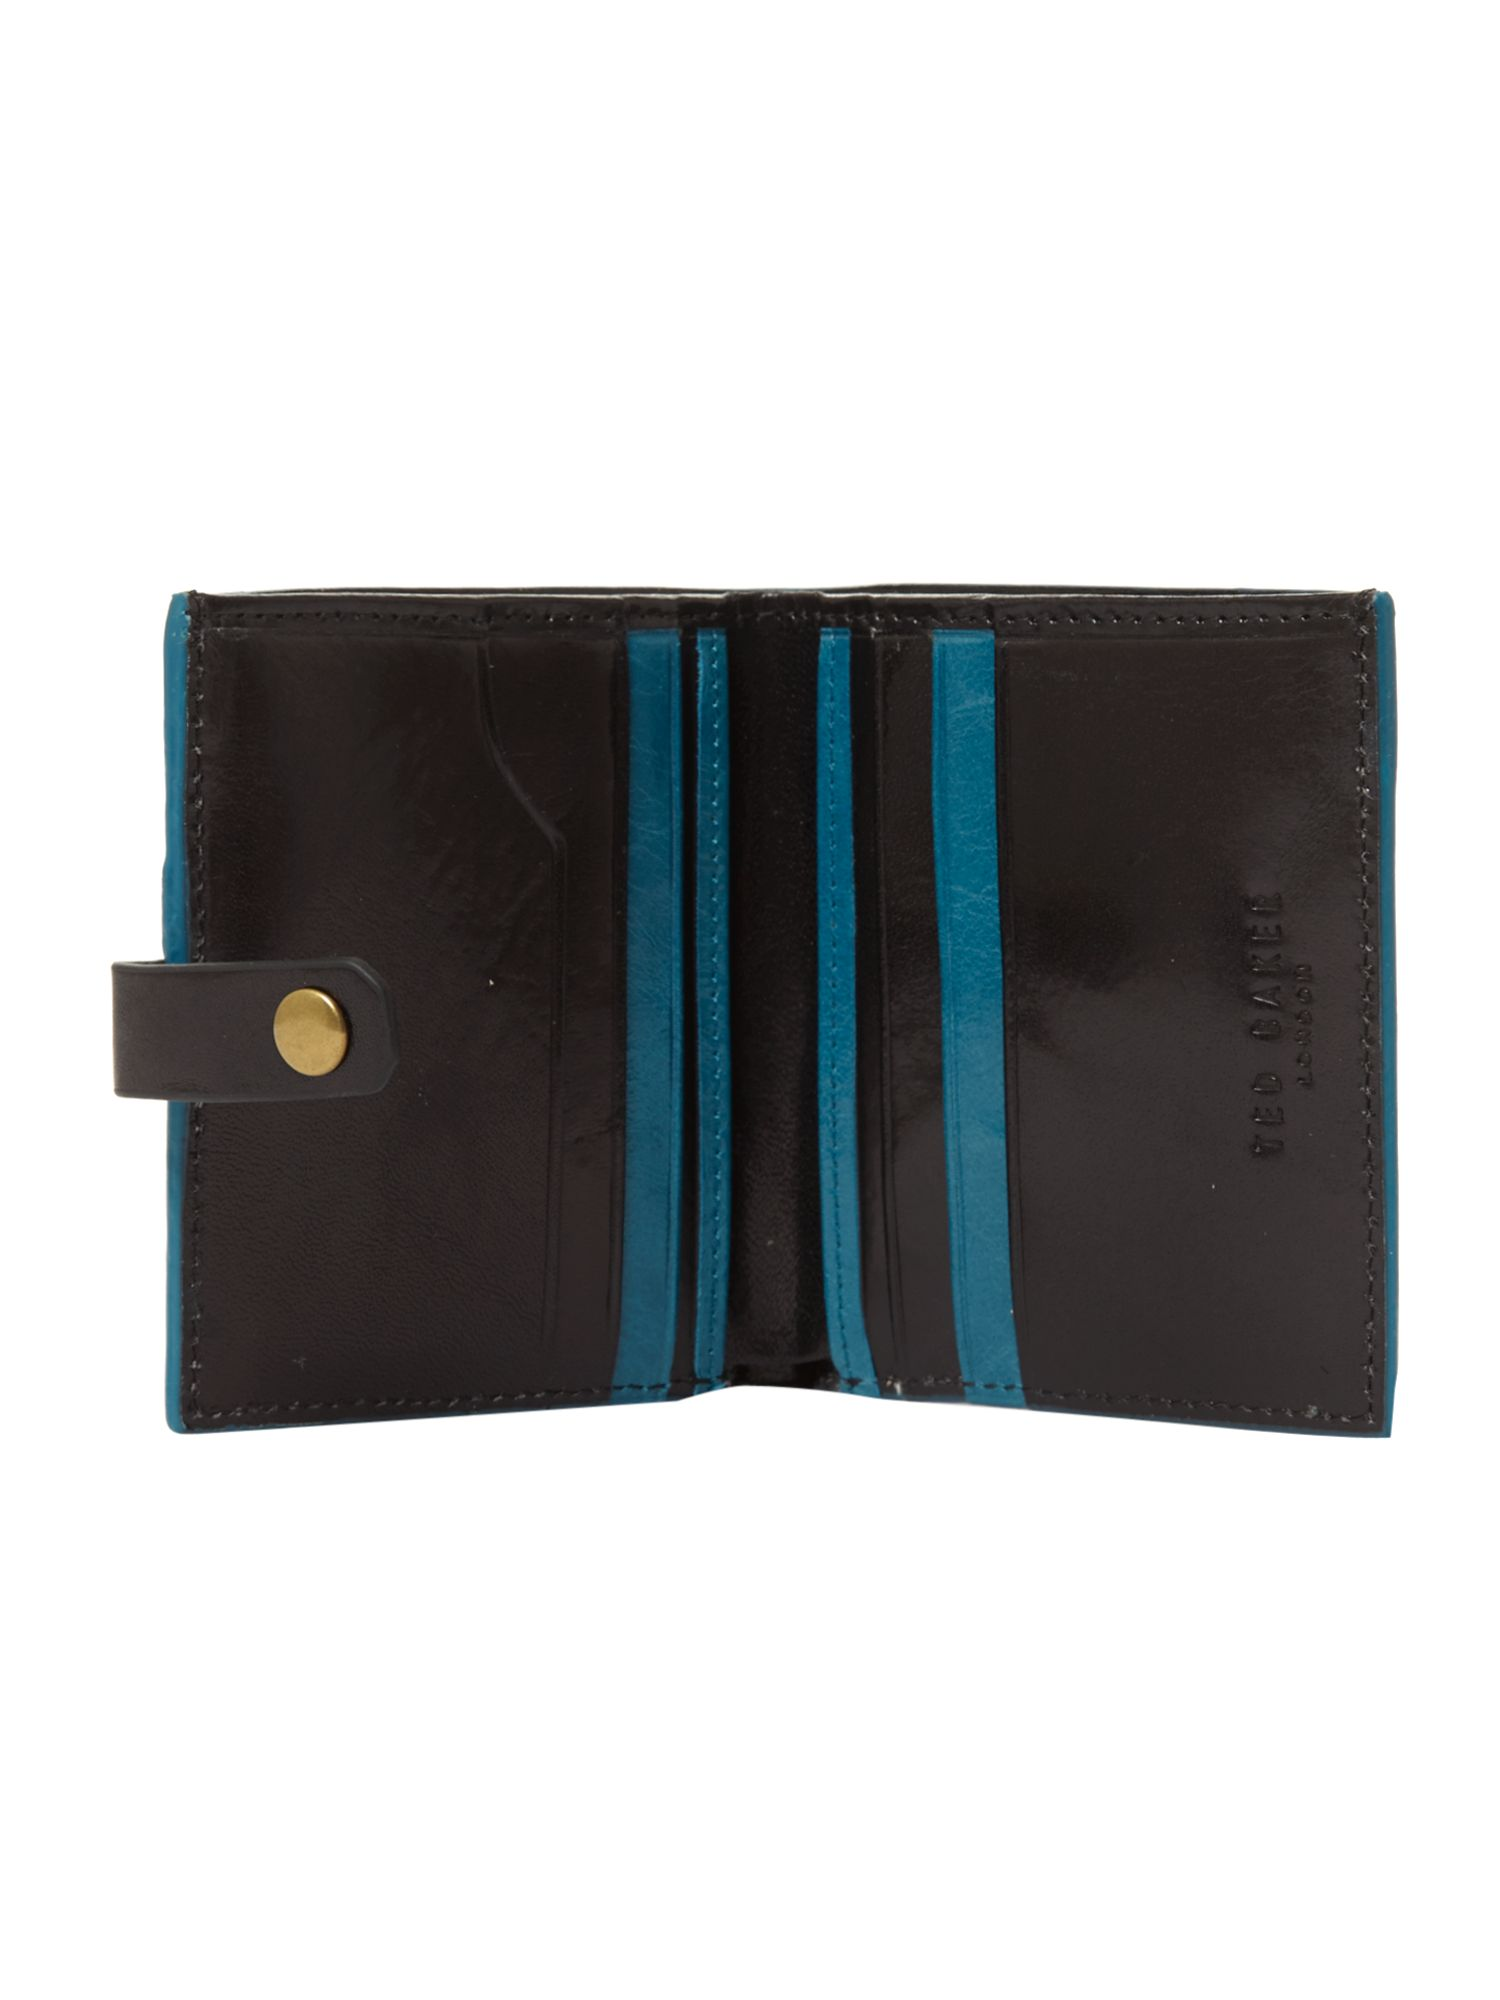 Small bilfold wallet